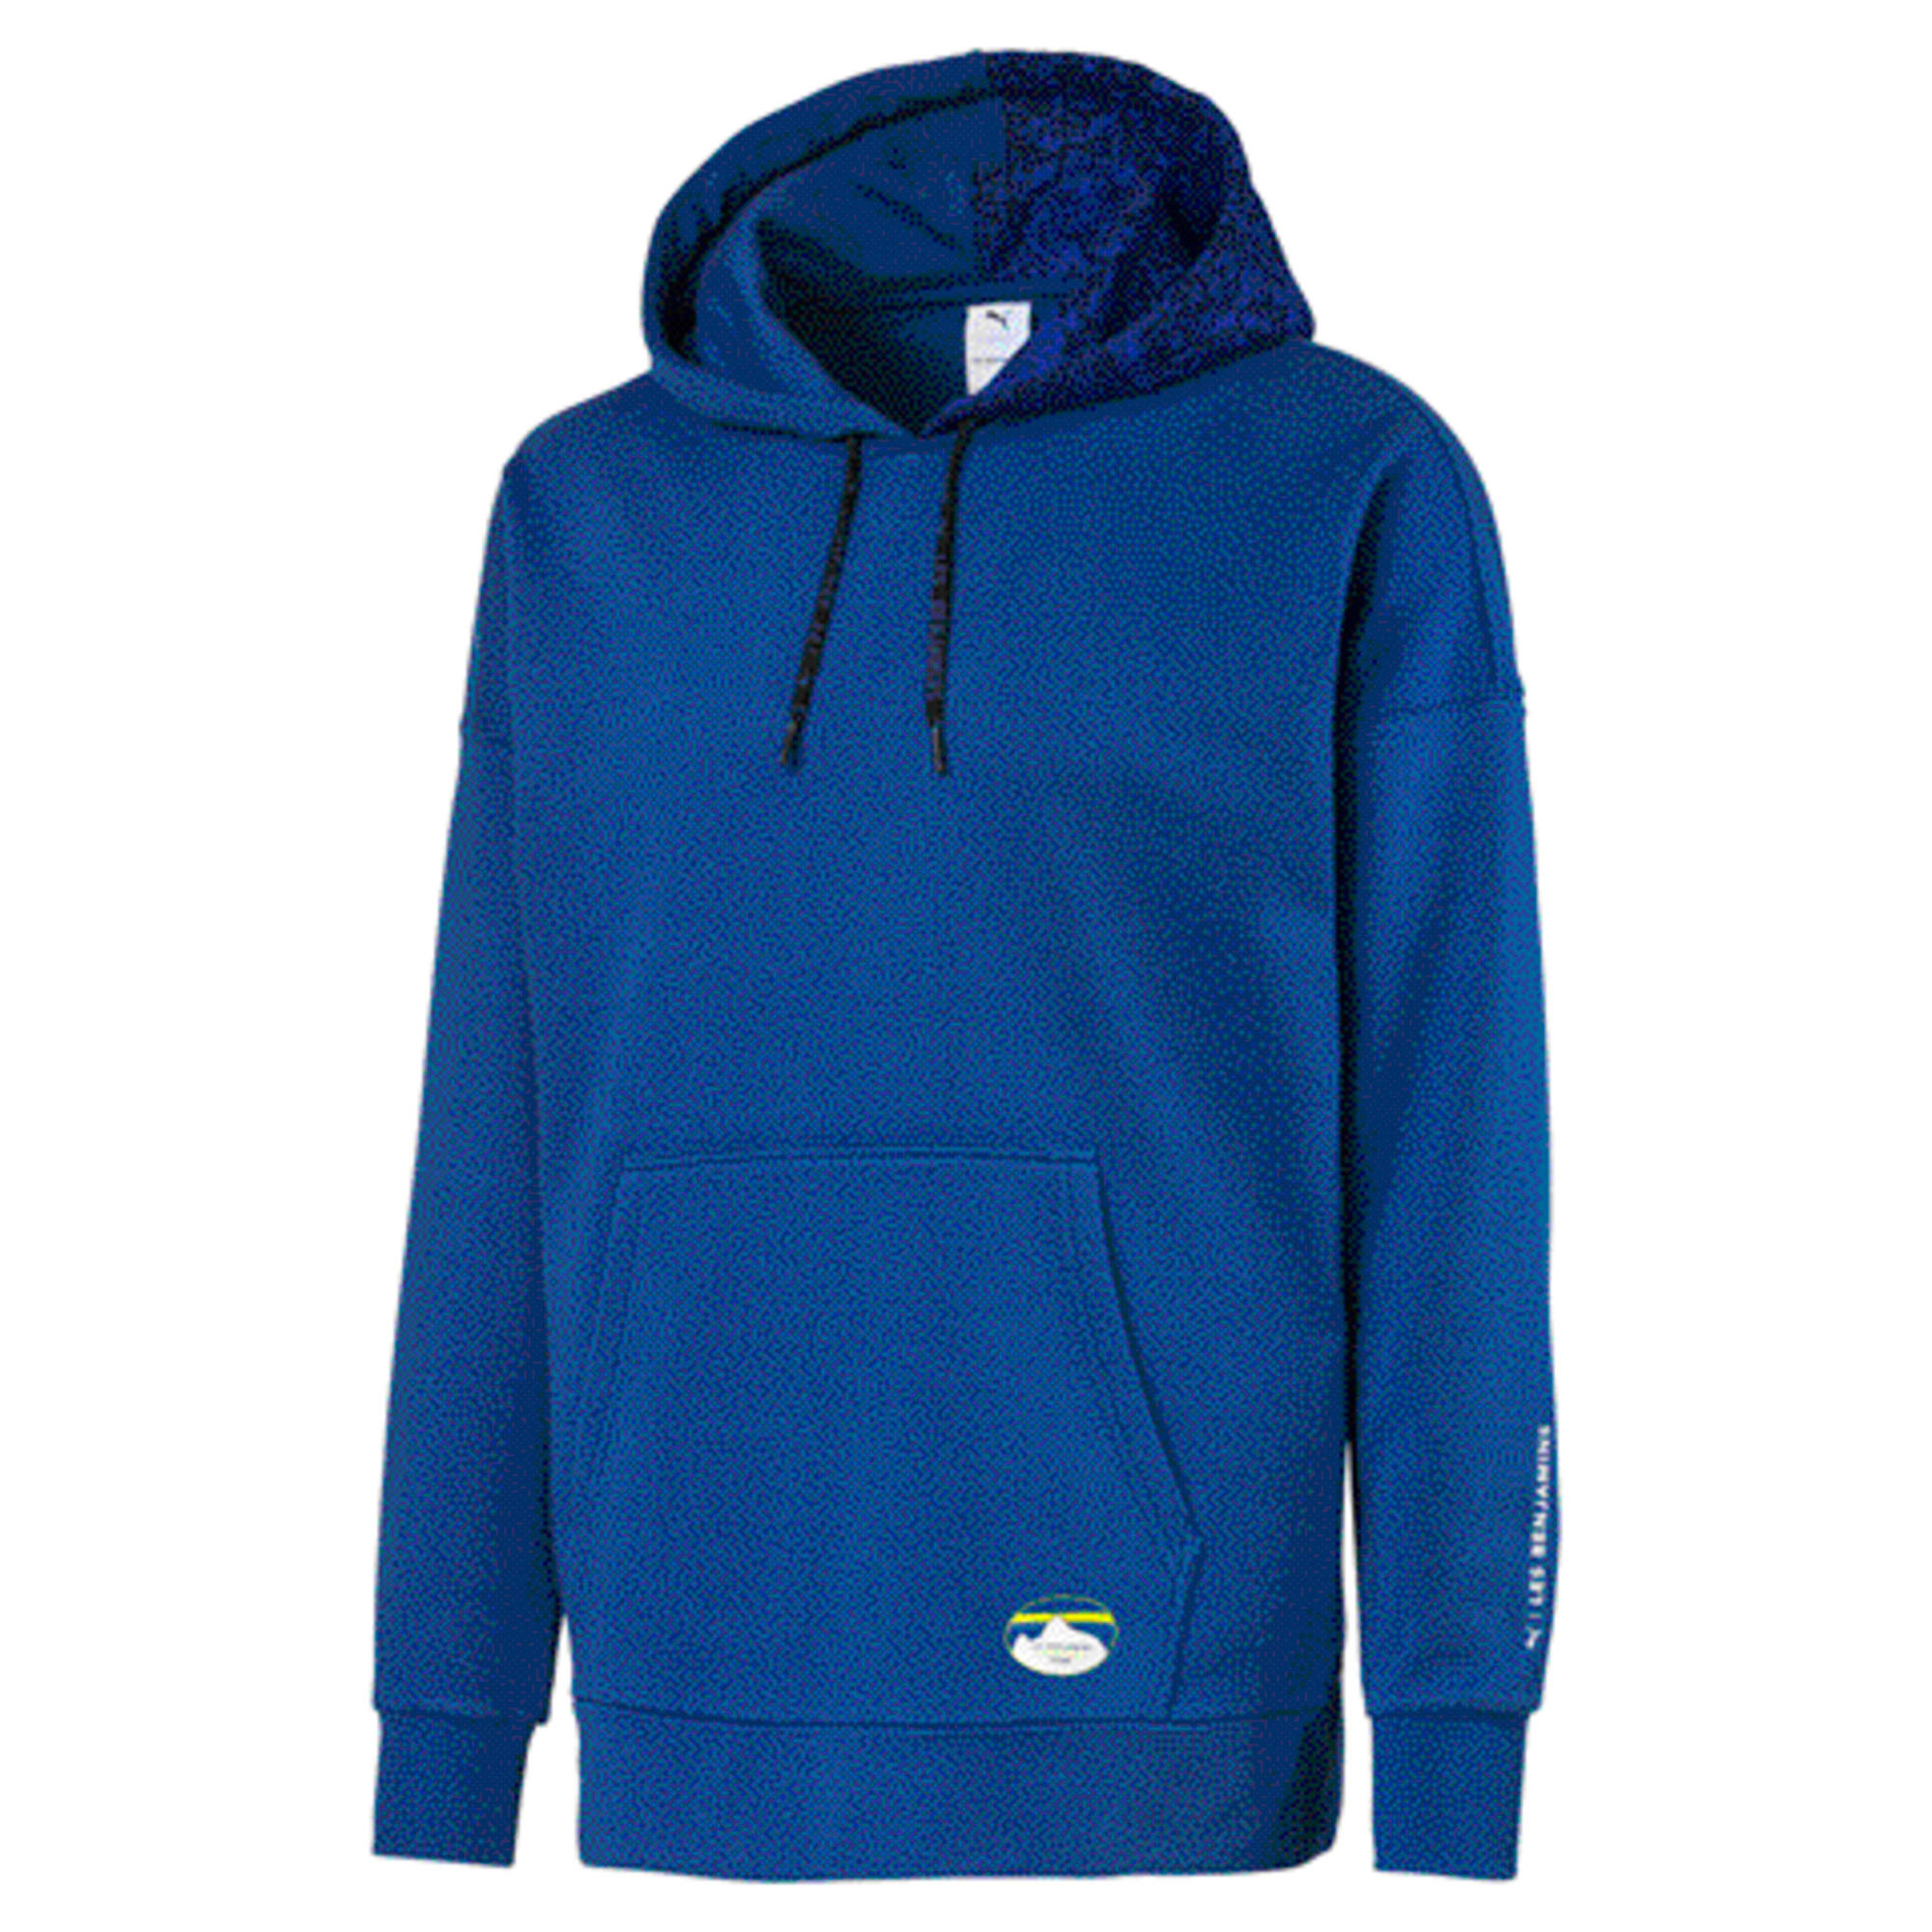 PUMA x LES BENJAMINS Men's Hoodie, Galaxy Blue, large